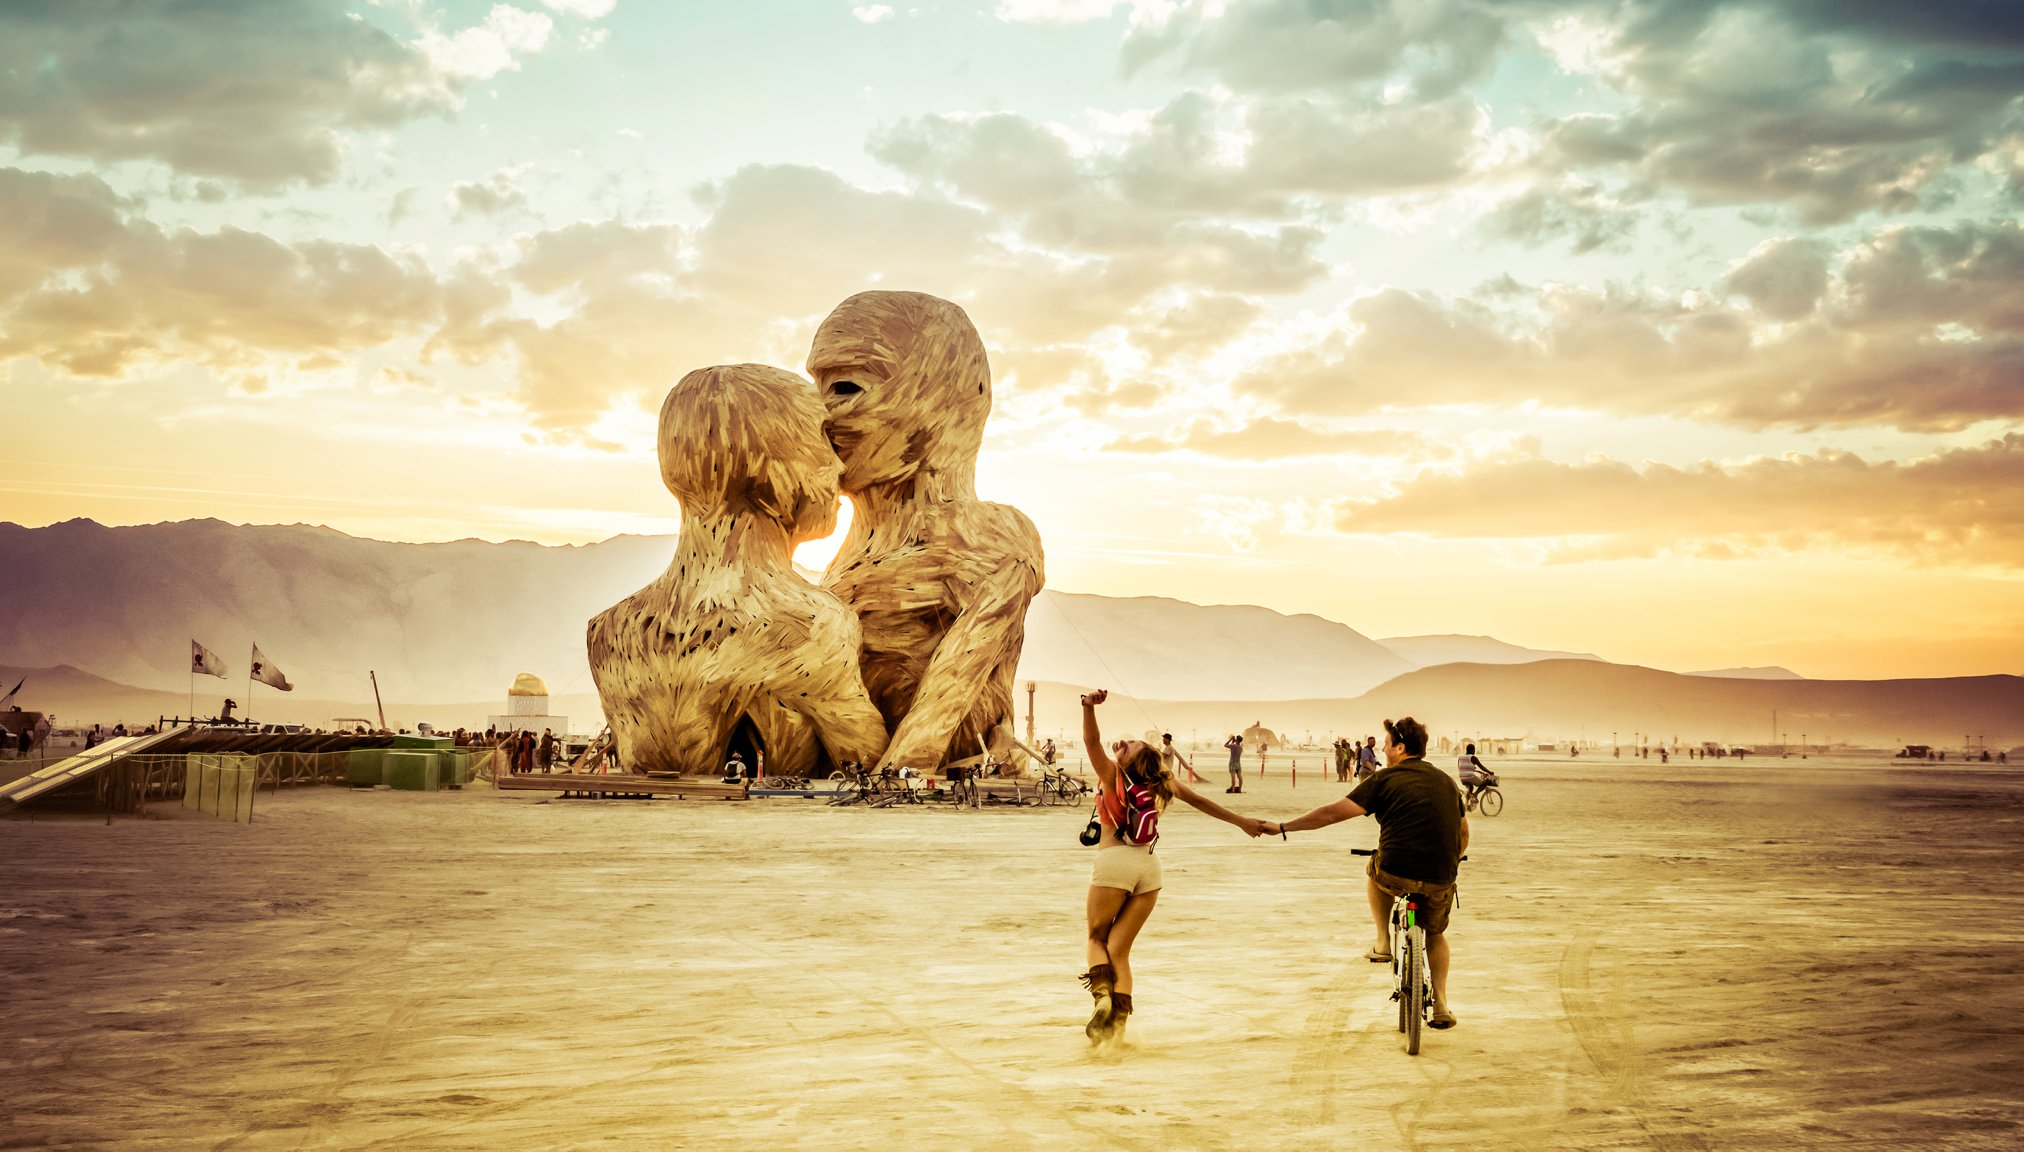 One of my most favorite images, photographed by the one and only Trey Ratcliff